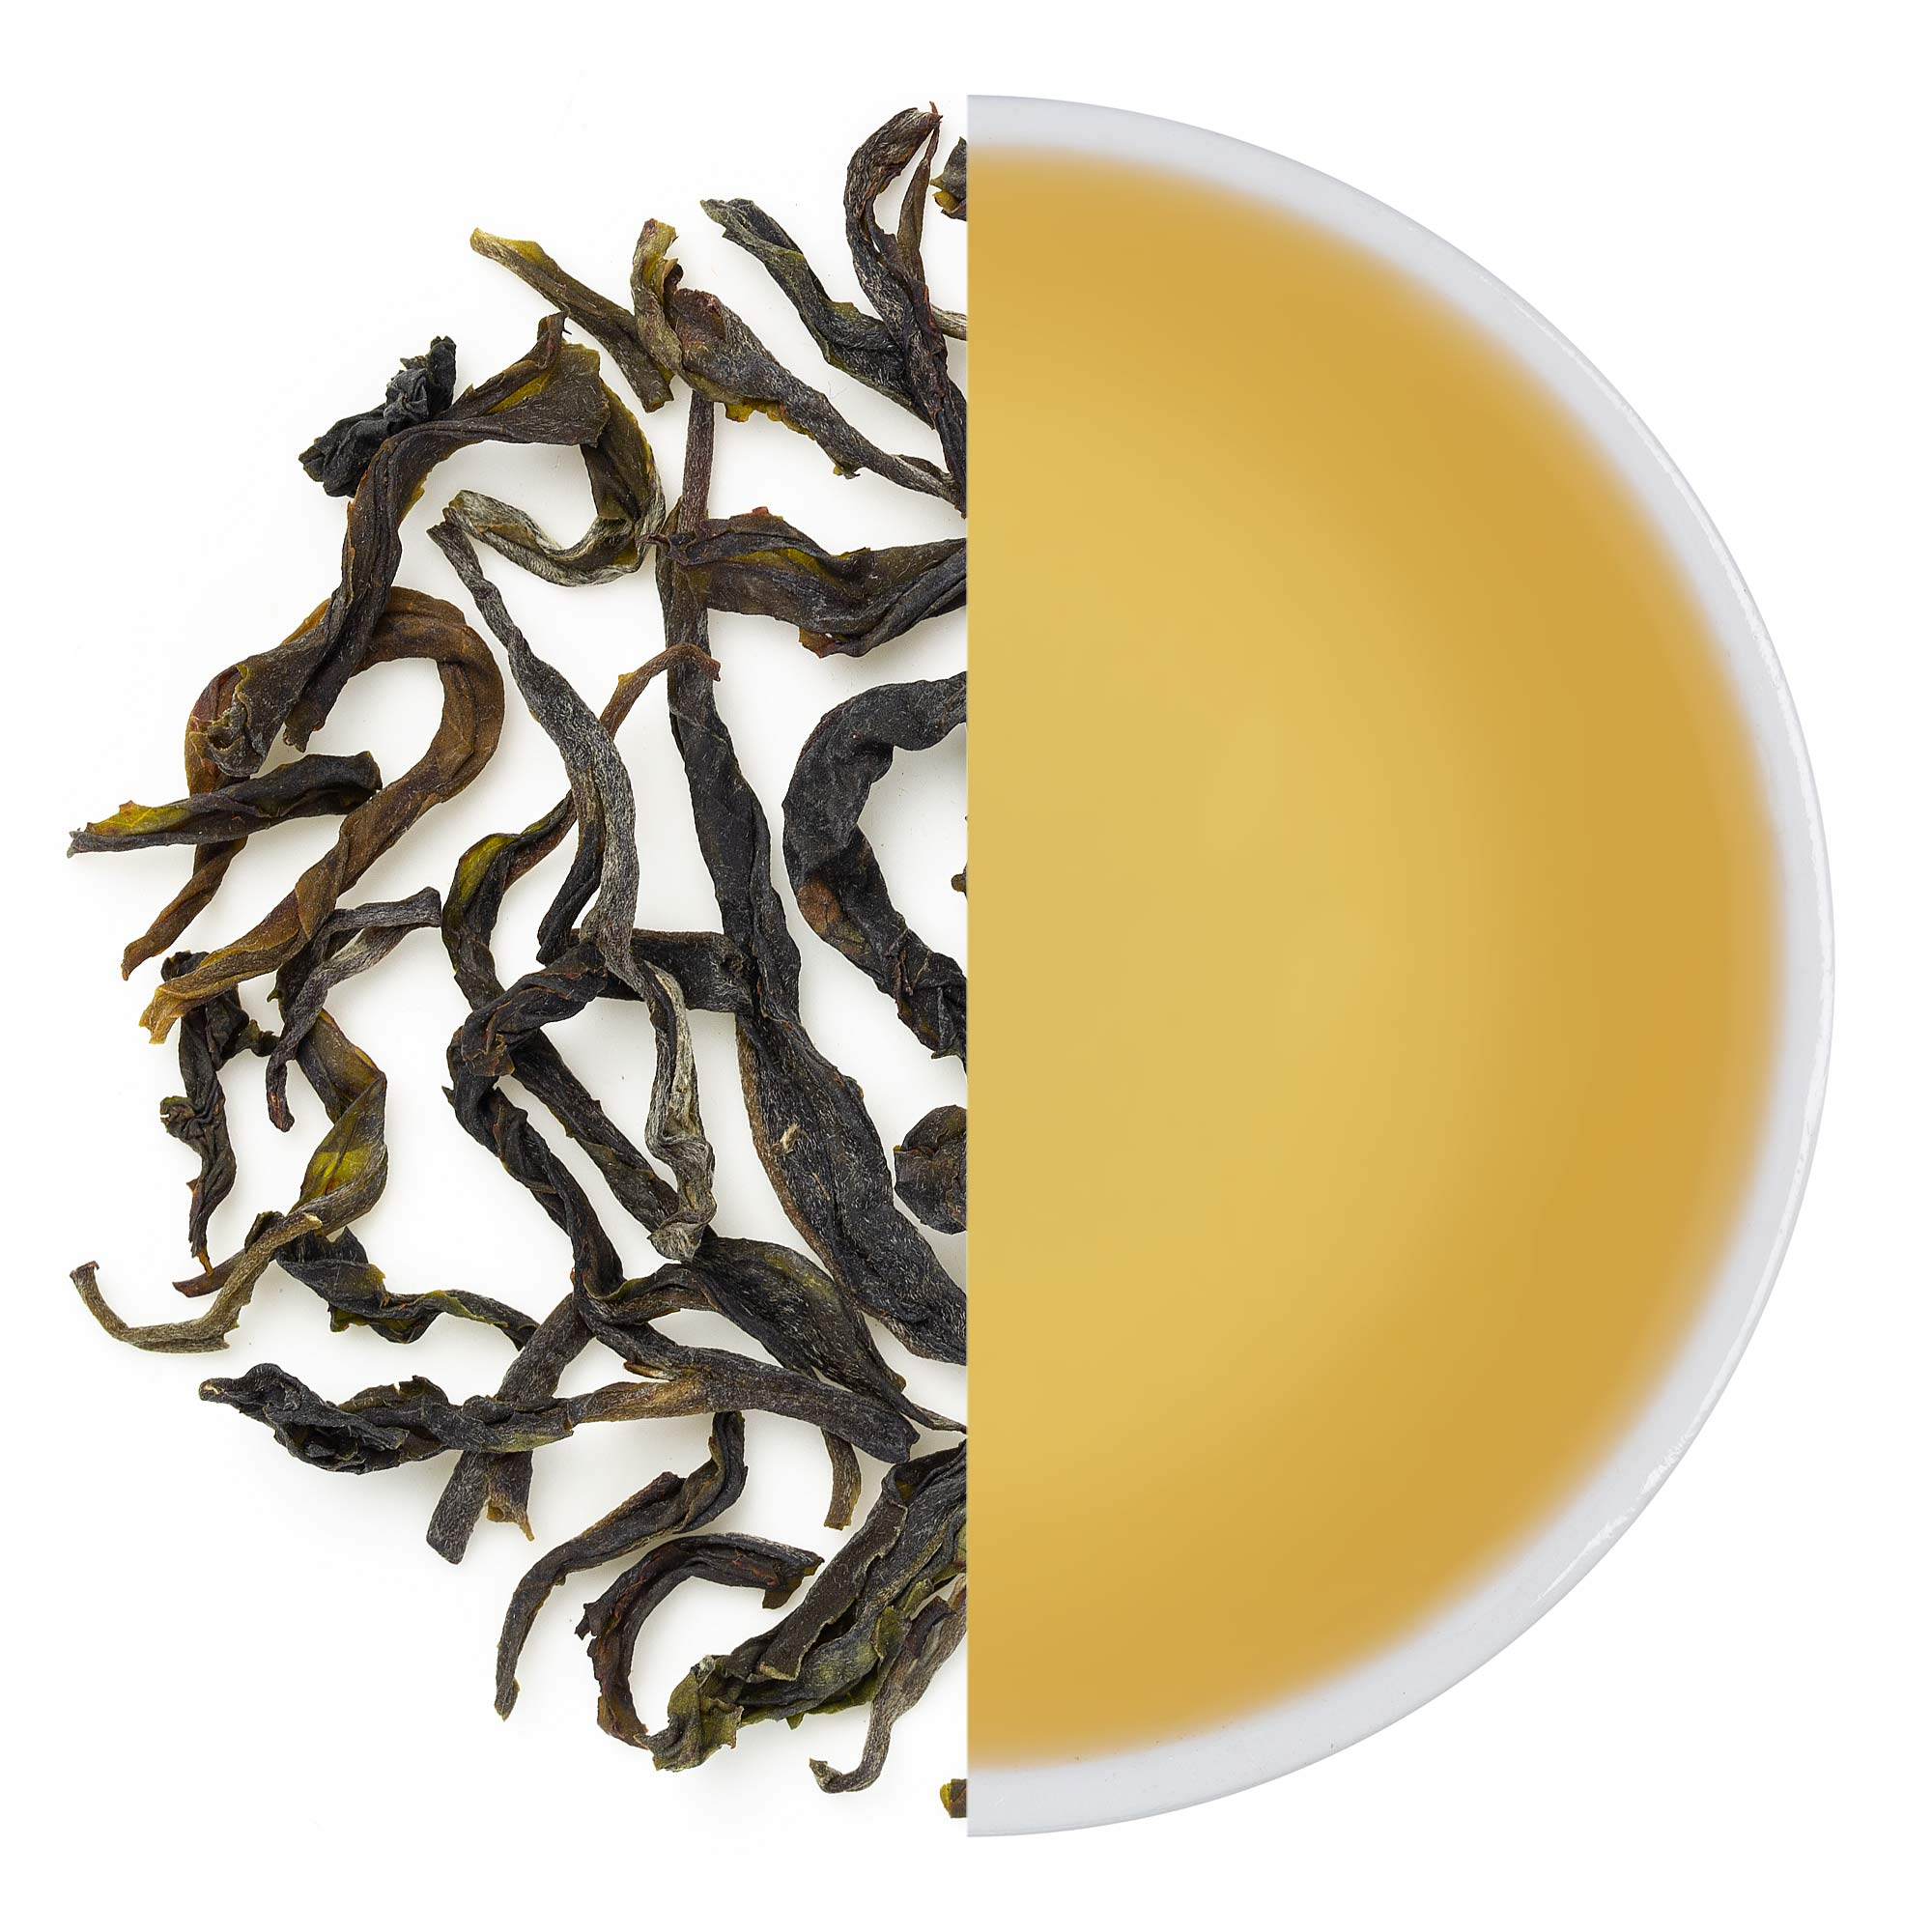 Donyi Polo Special Spring Oolong Tea